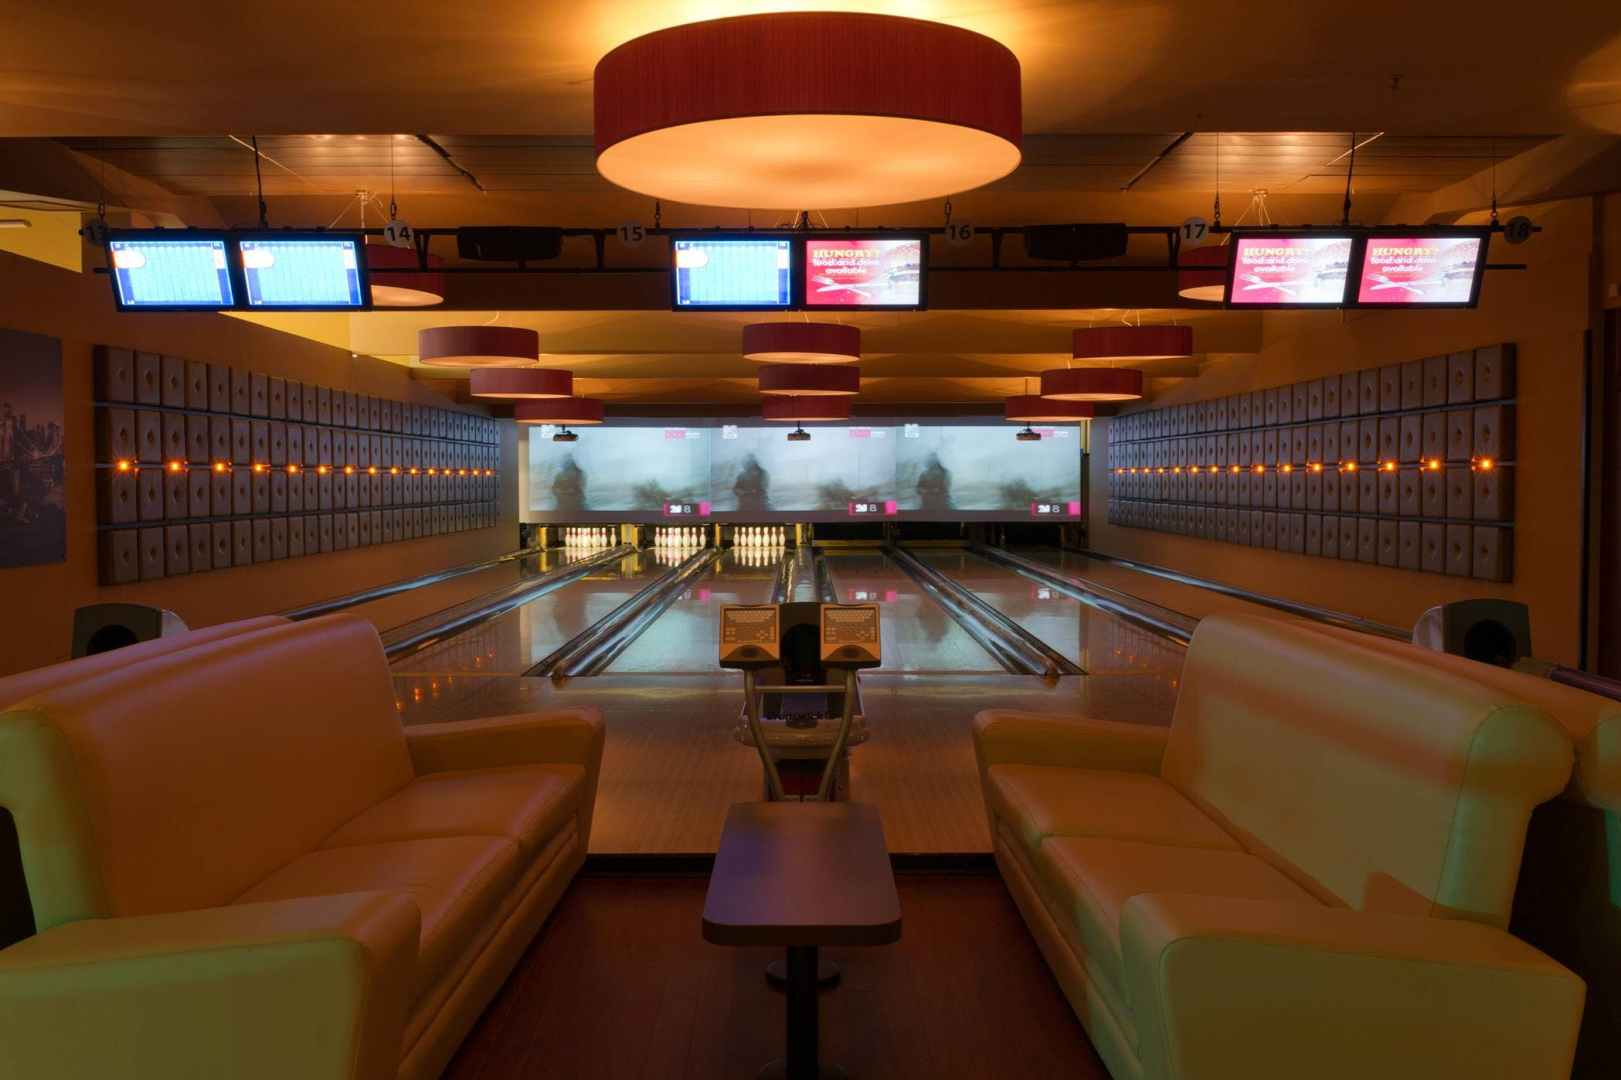 hight resolution of hire space venue hire vip bowling lanes at namco funscape